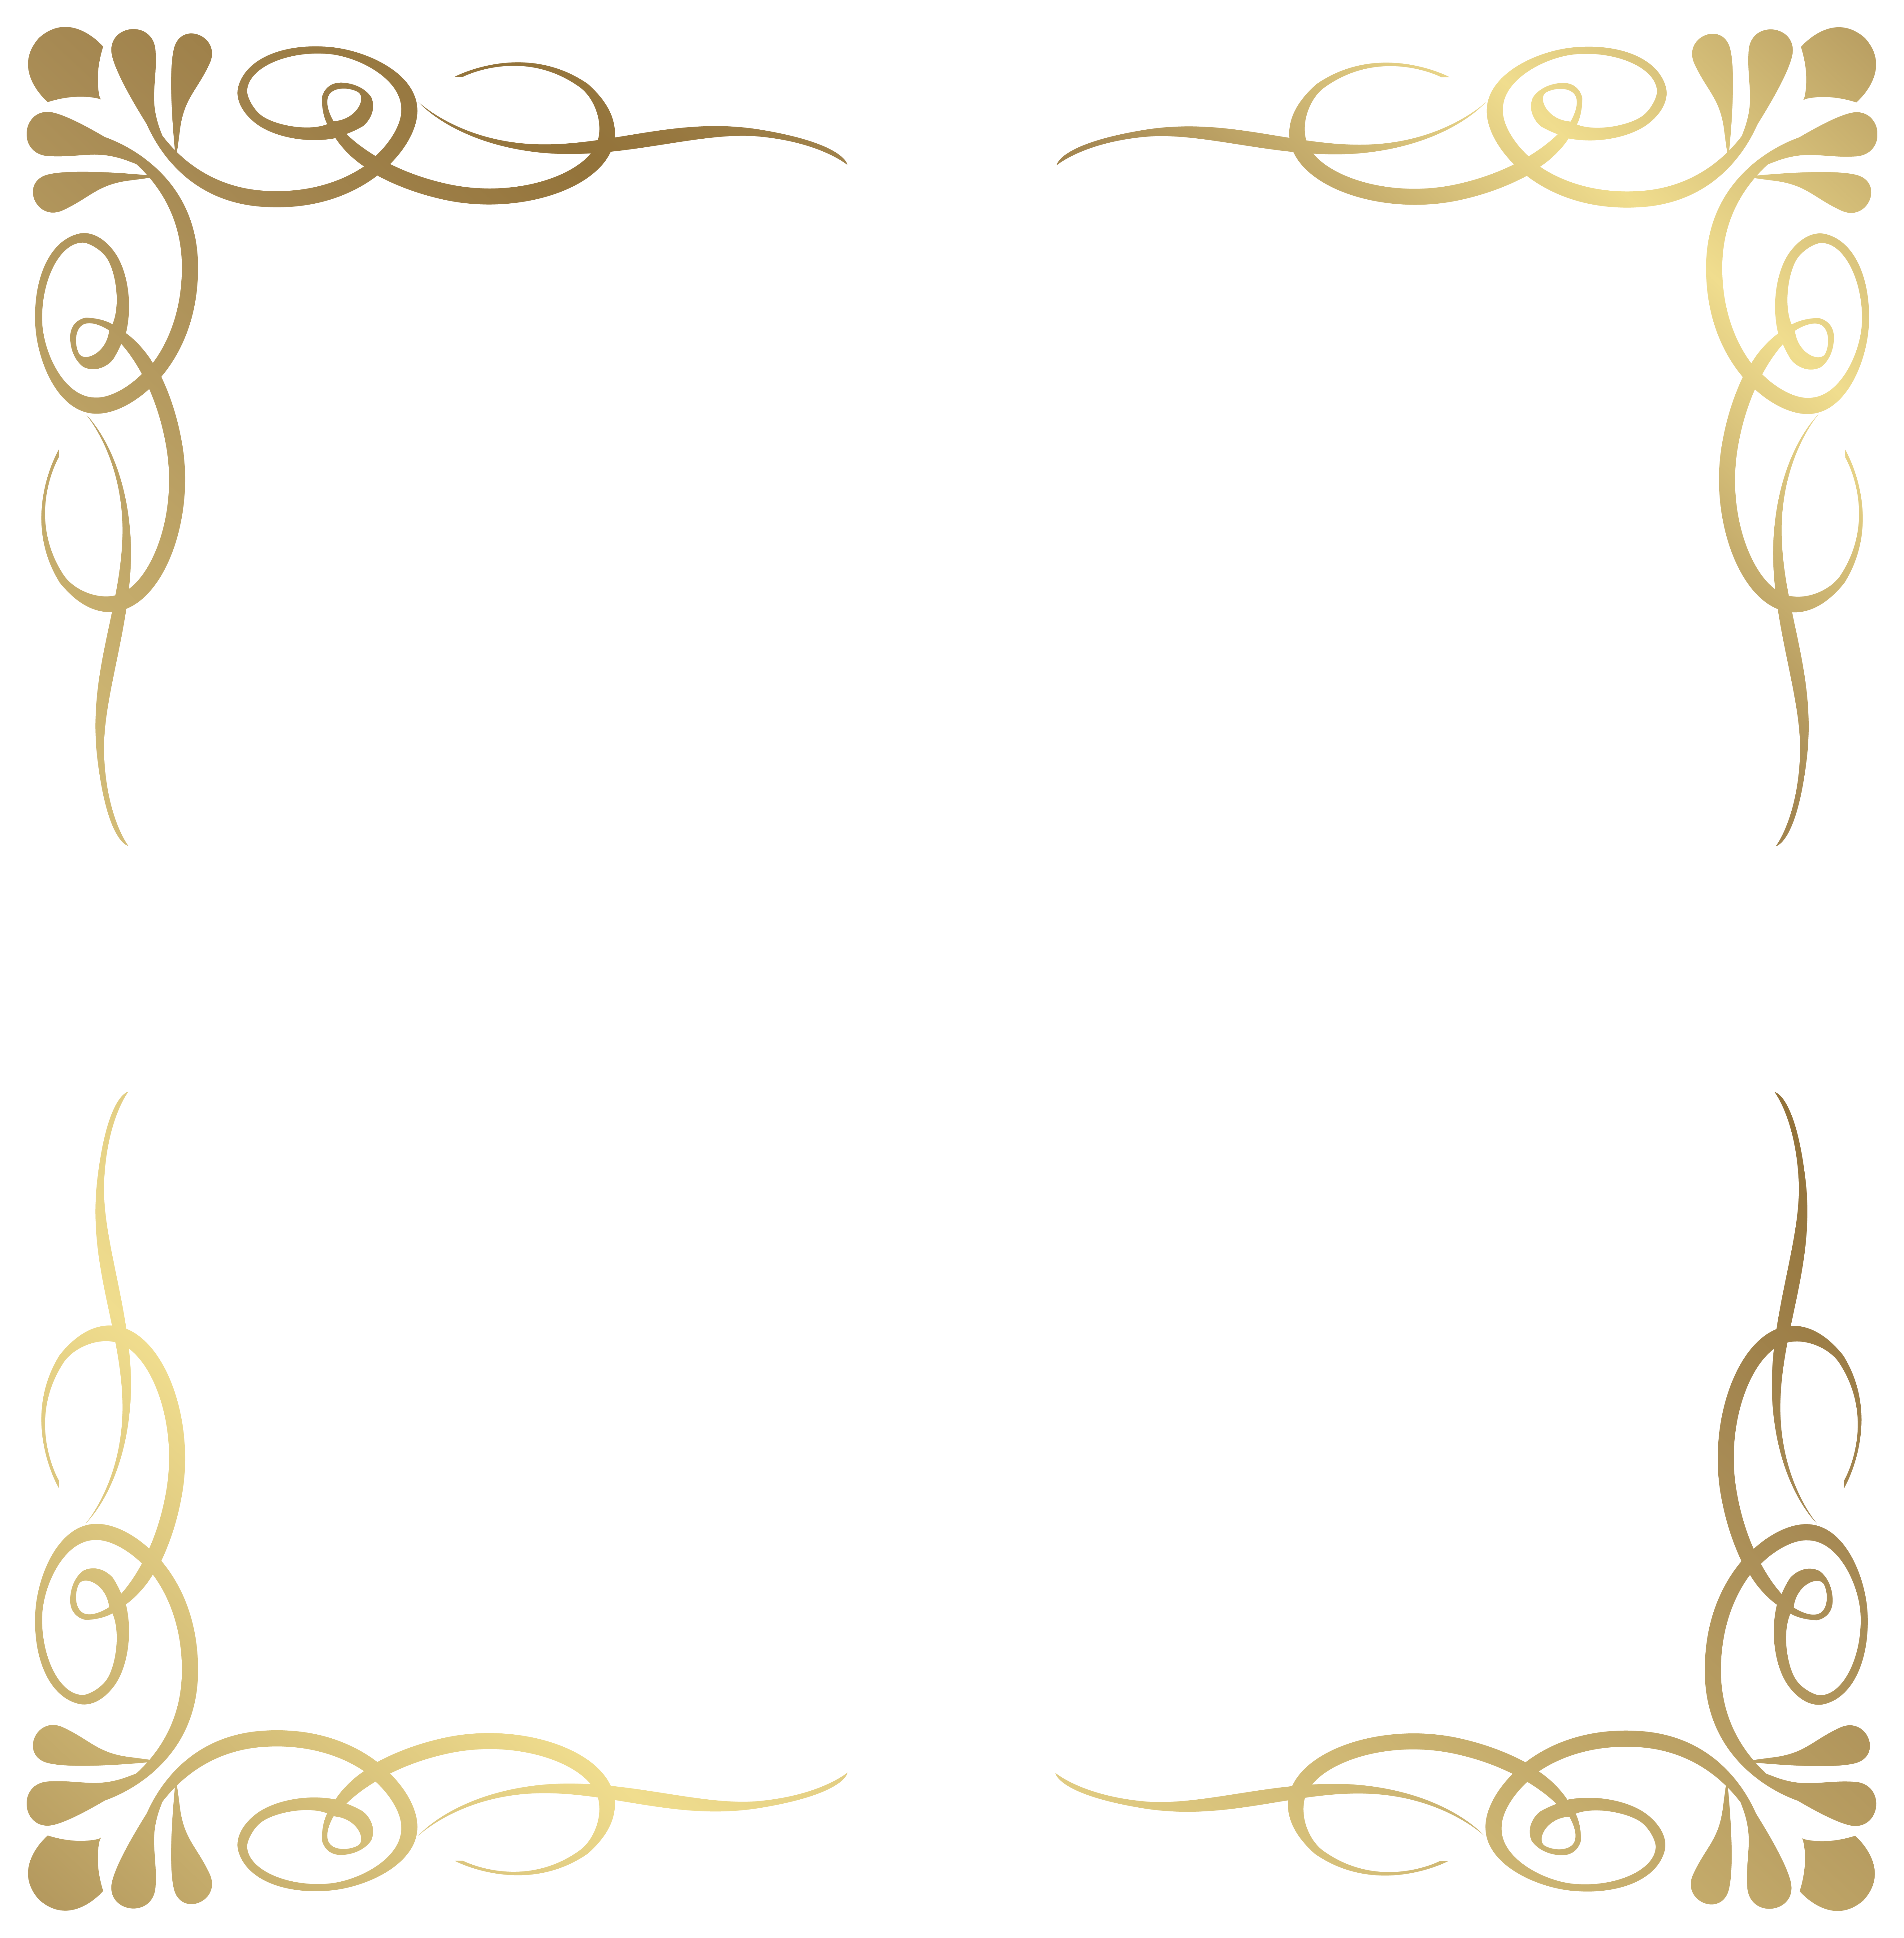 Decorative border png. Transparent free images only